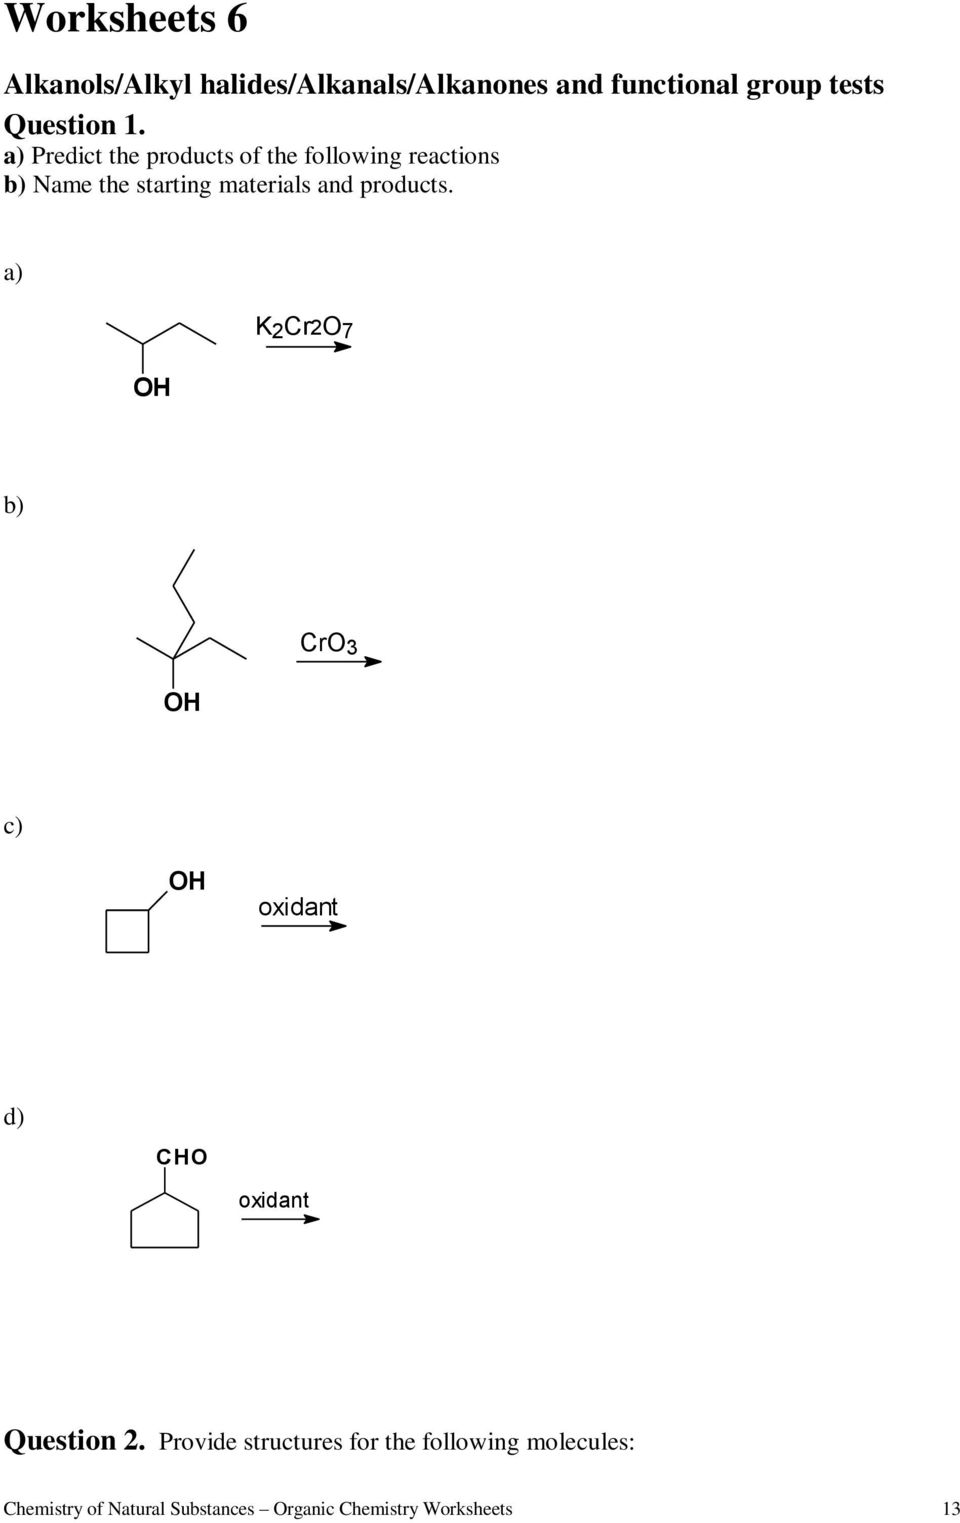 hight resolution of Worksheets for Organic Chemistry - PDF Free Download